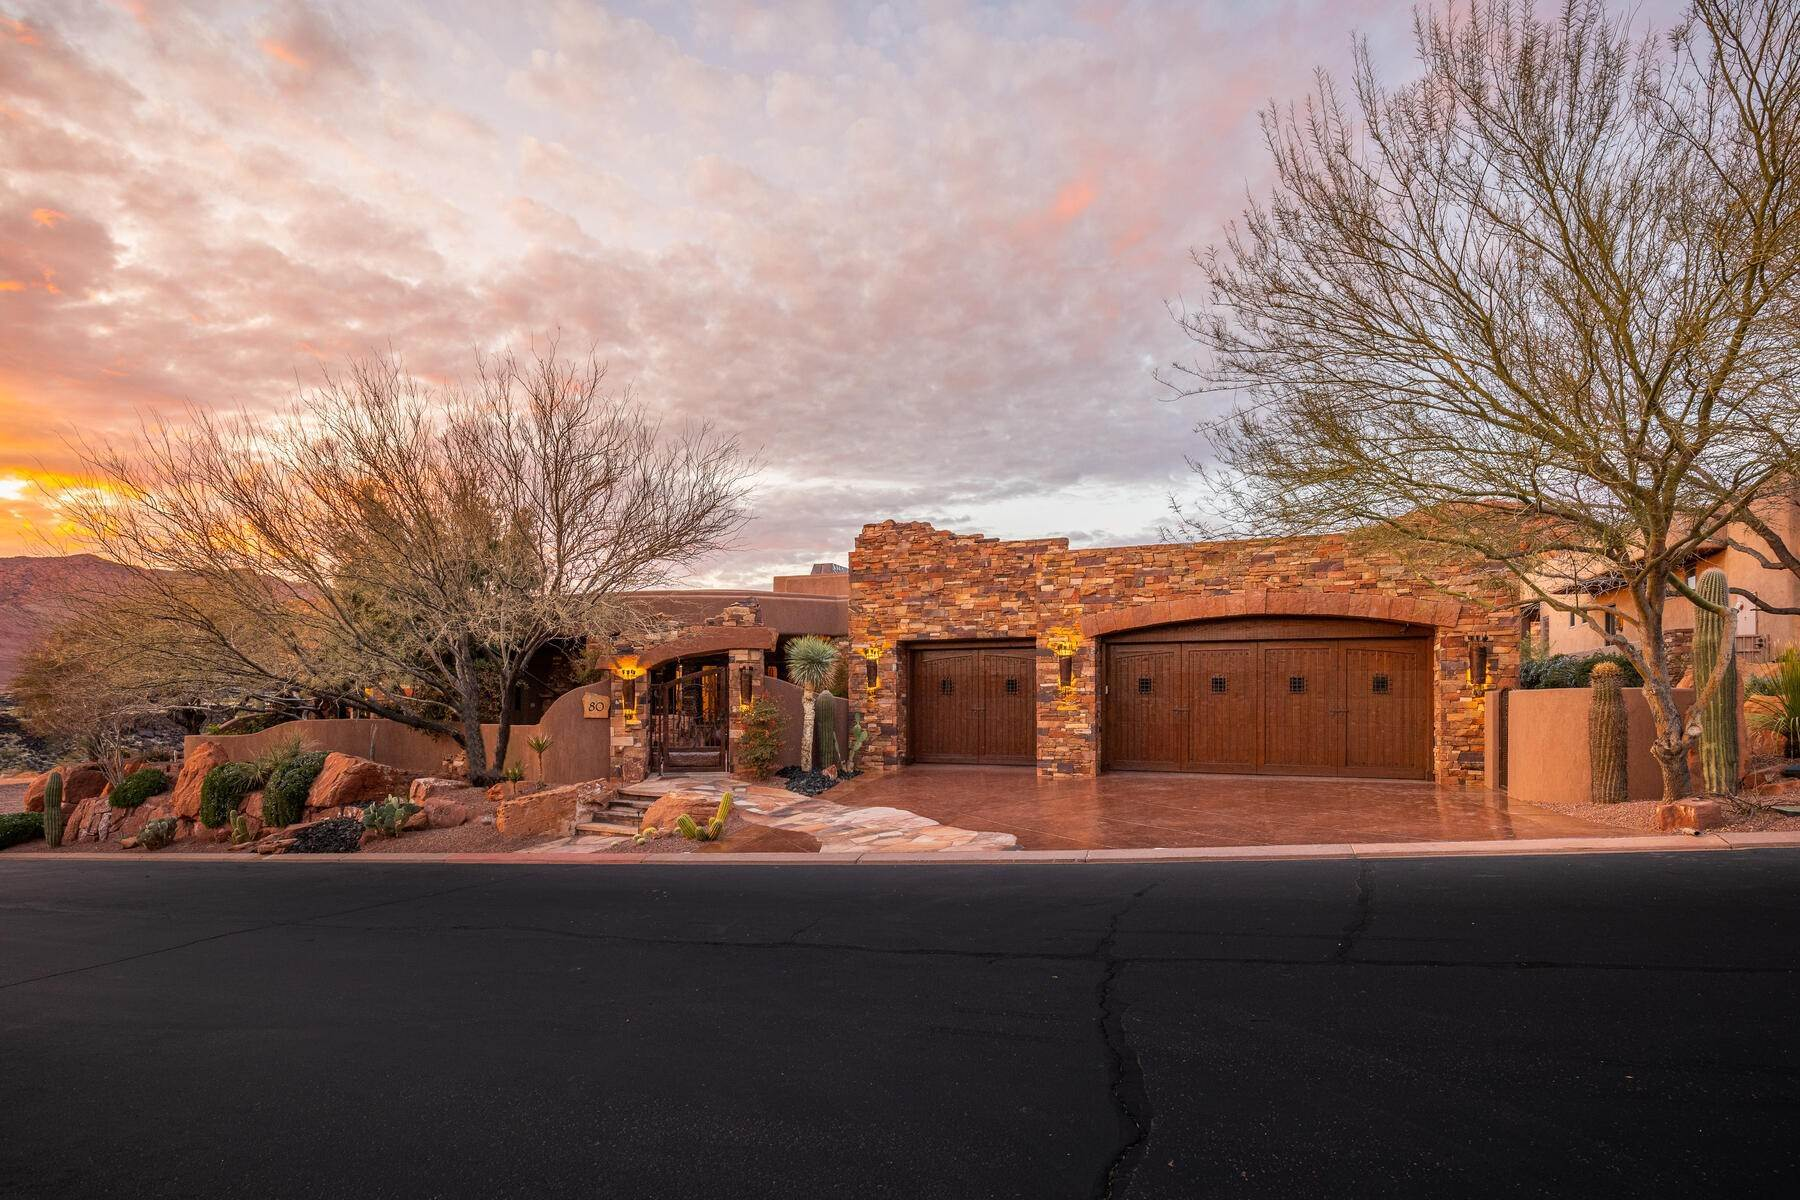 Single Family Homes for Sale at Backs To Snow Canyon State Park 3052 N Snow Canyon Parkway, #80 St. George, Utah 84770 United States